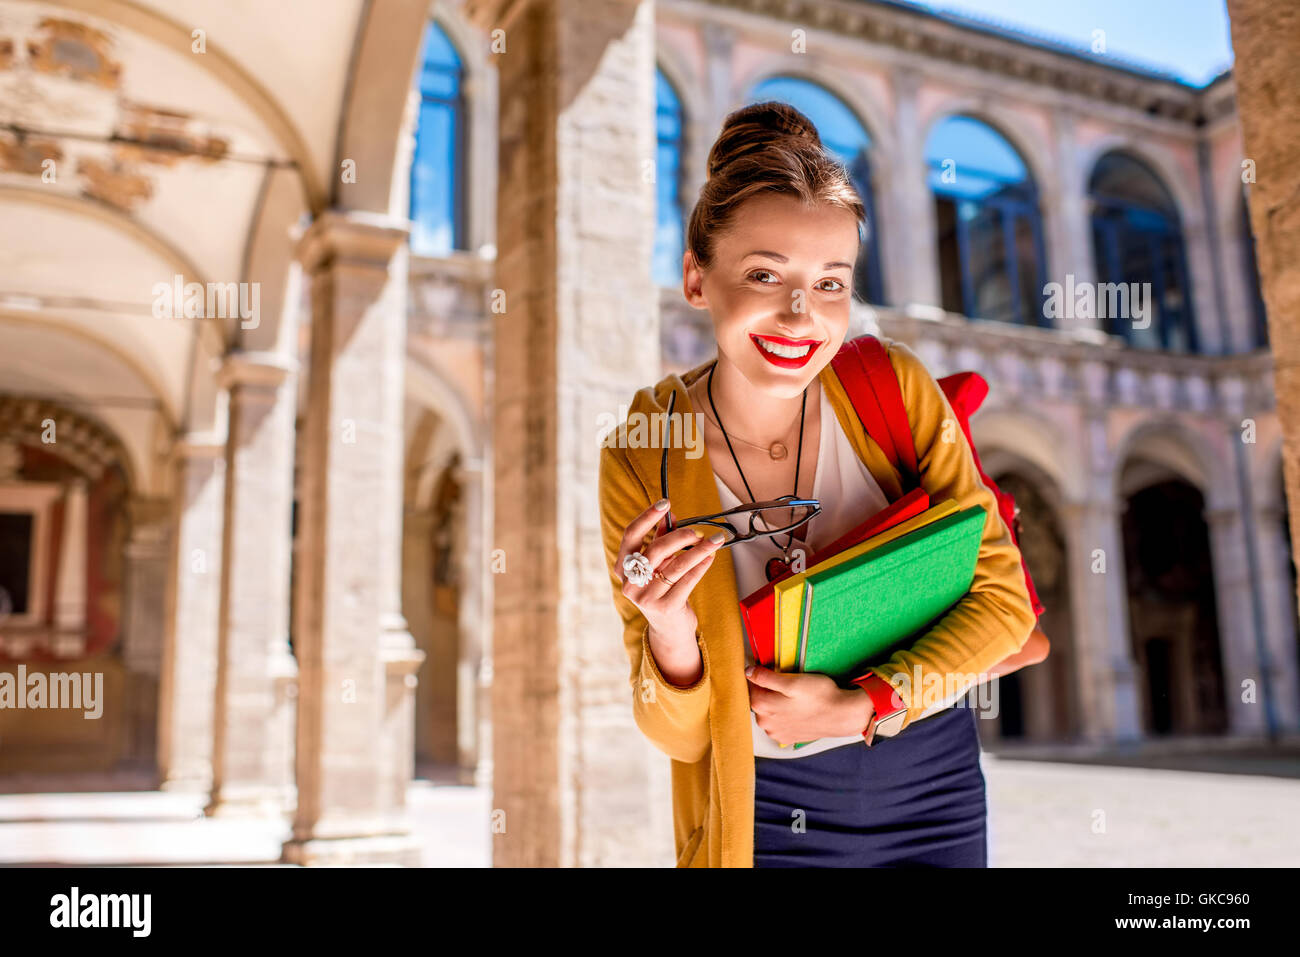 Student in the oldest university in Bologna city - Stock Image